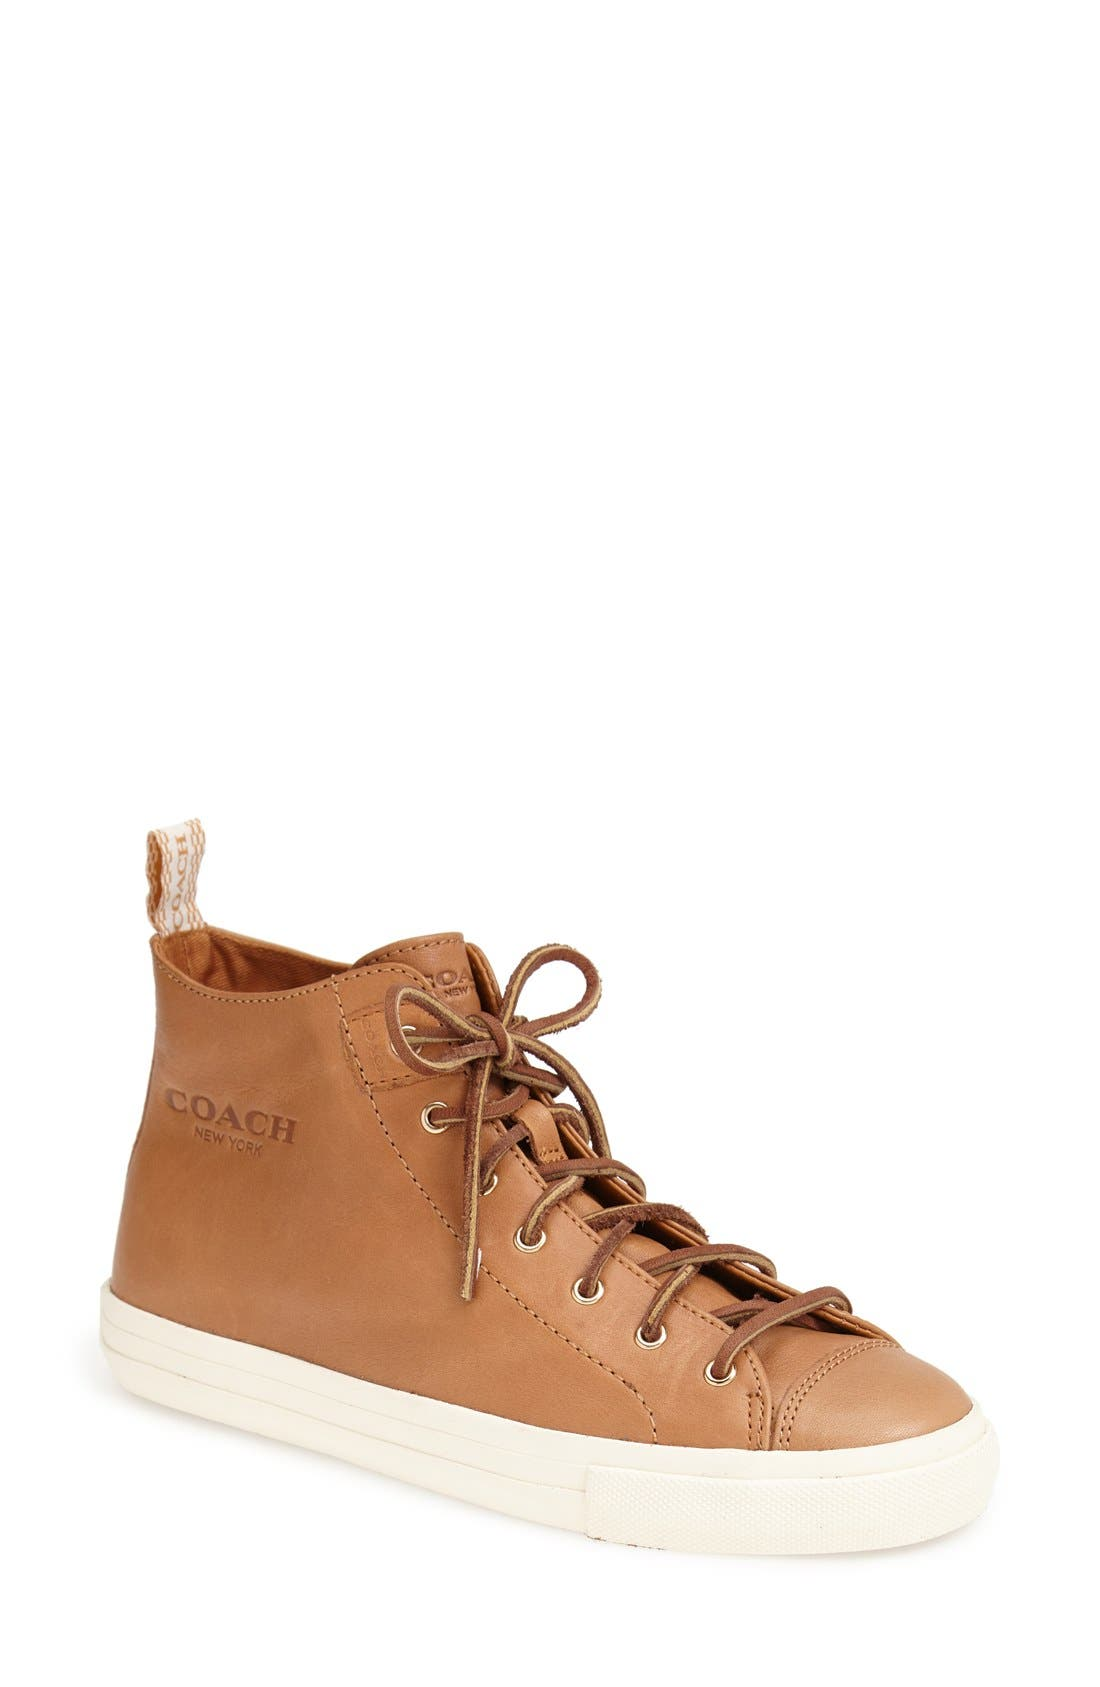 Alternate Image 1 Selected - COACH 'Brenna' Leather Sneaker (Women)